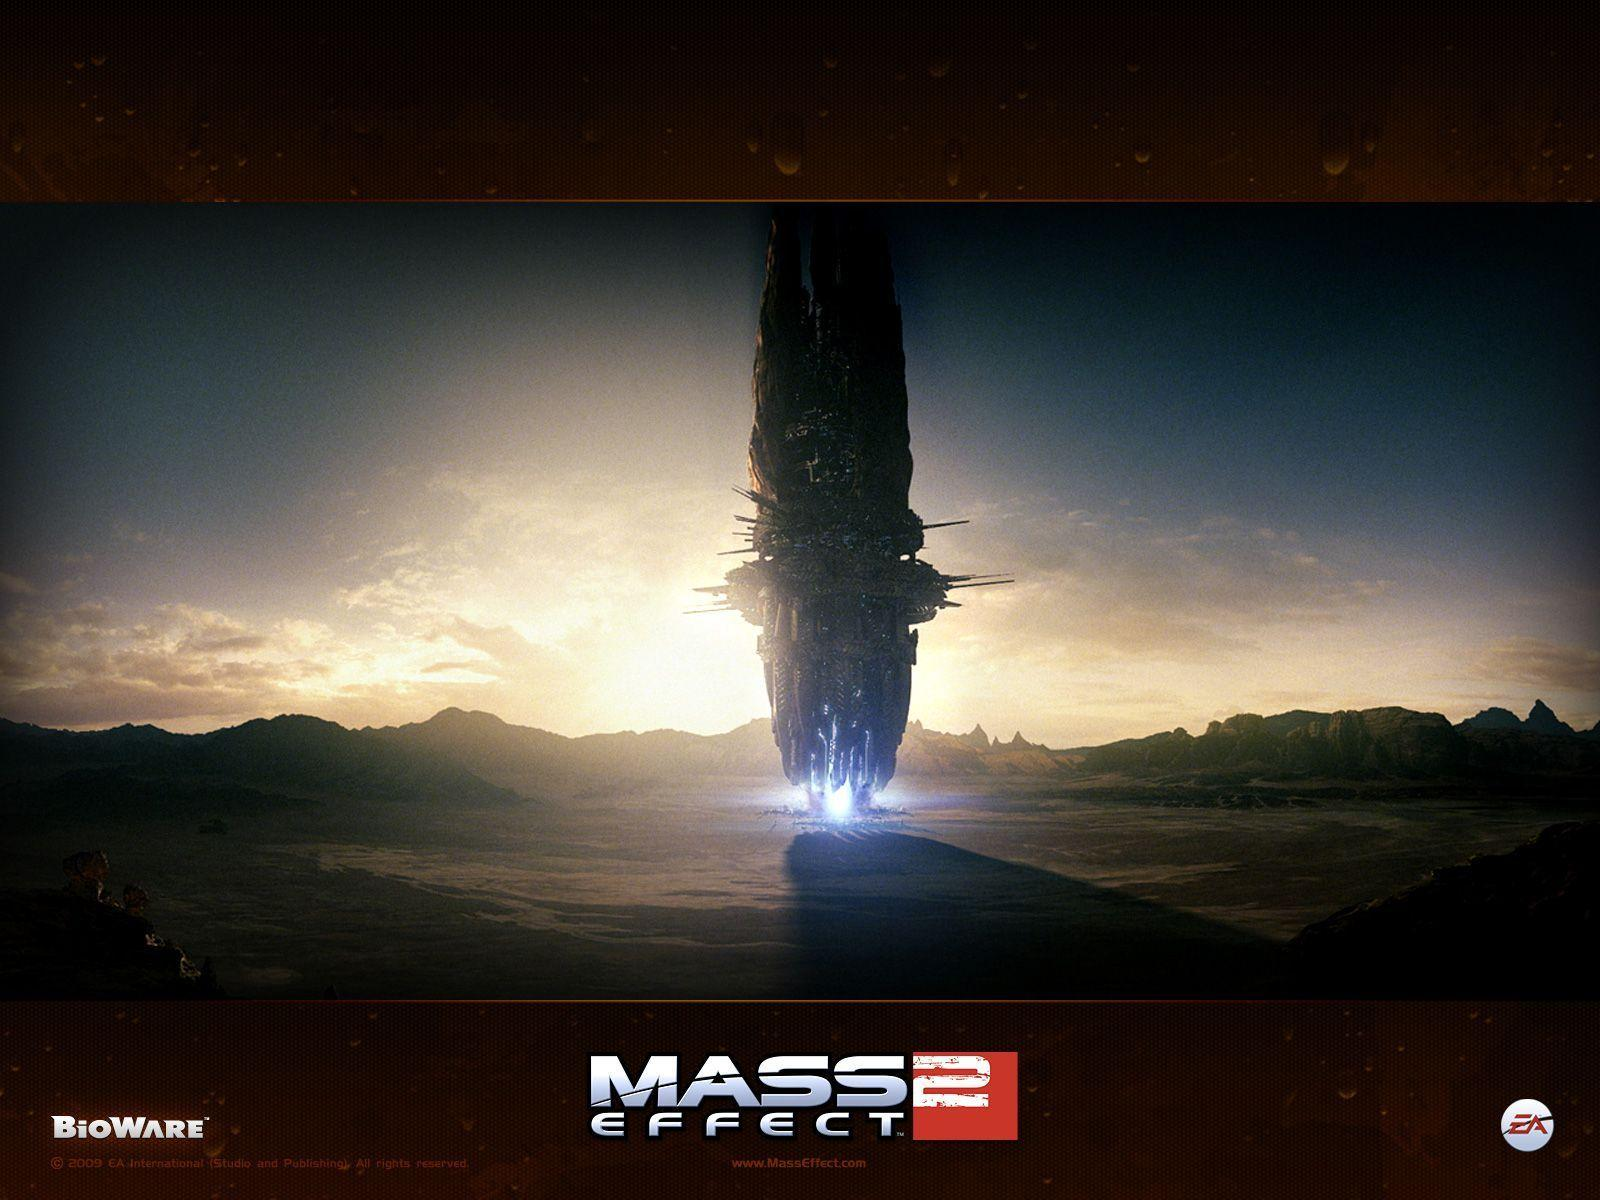 Fond ecran, wallpapers Mass Effect 2